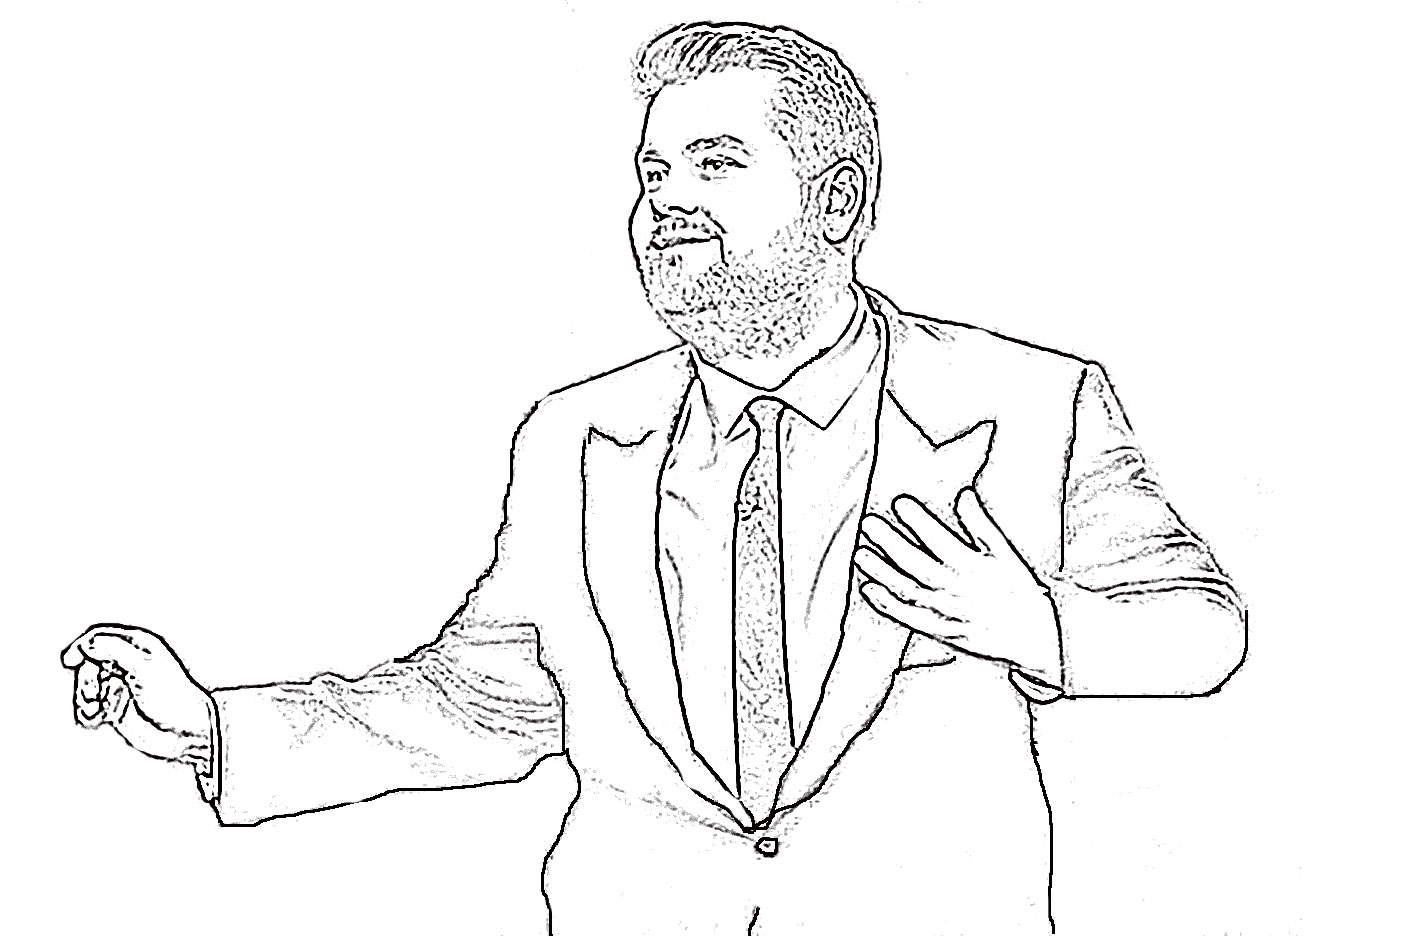 James Corden brings it every night in his monologue.